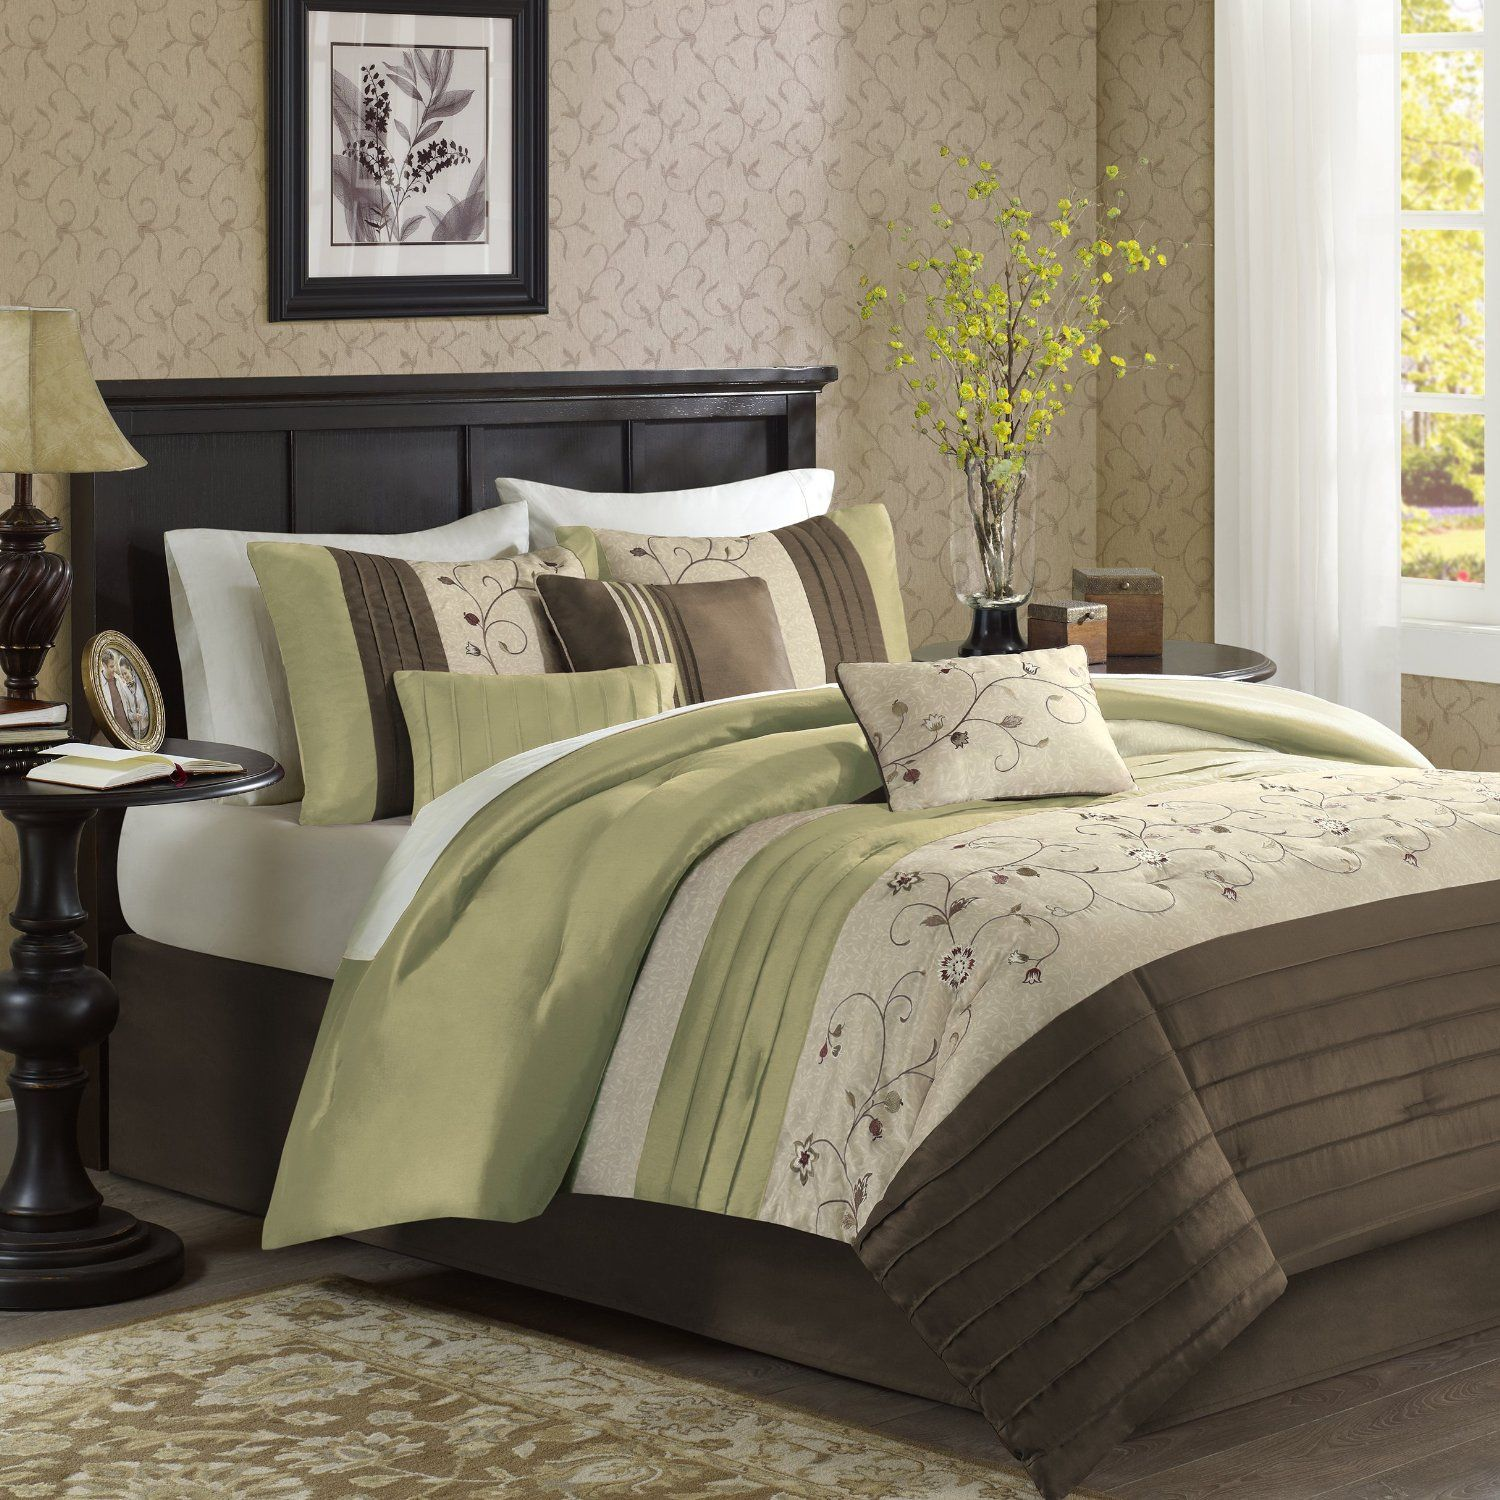 Green Bedding Collections Cool Calm and Serene Bedroom